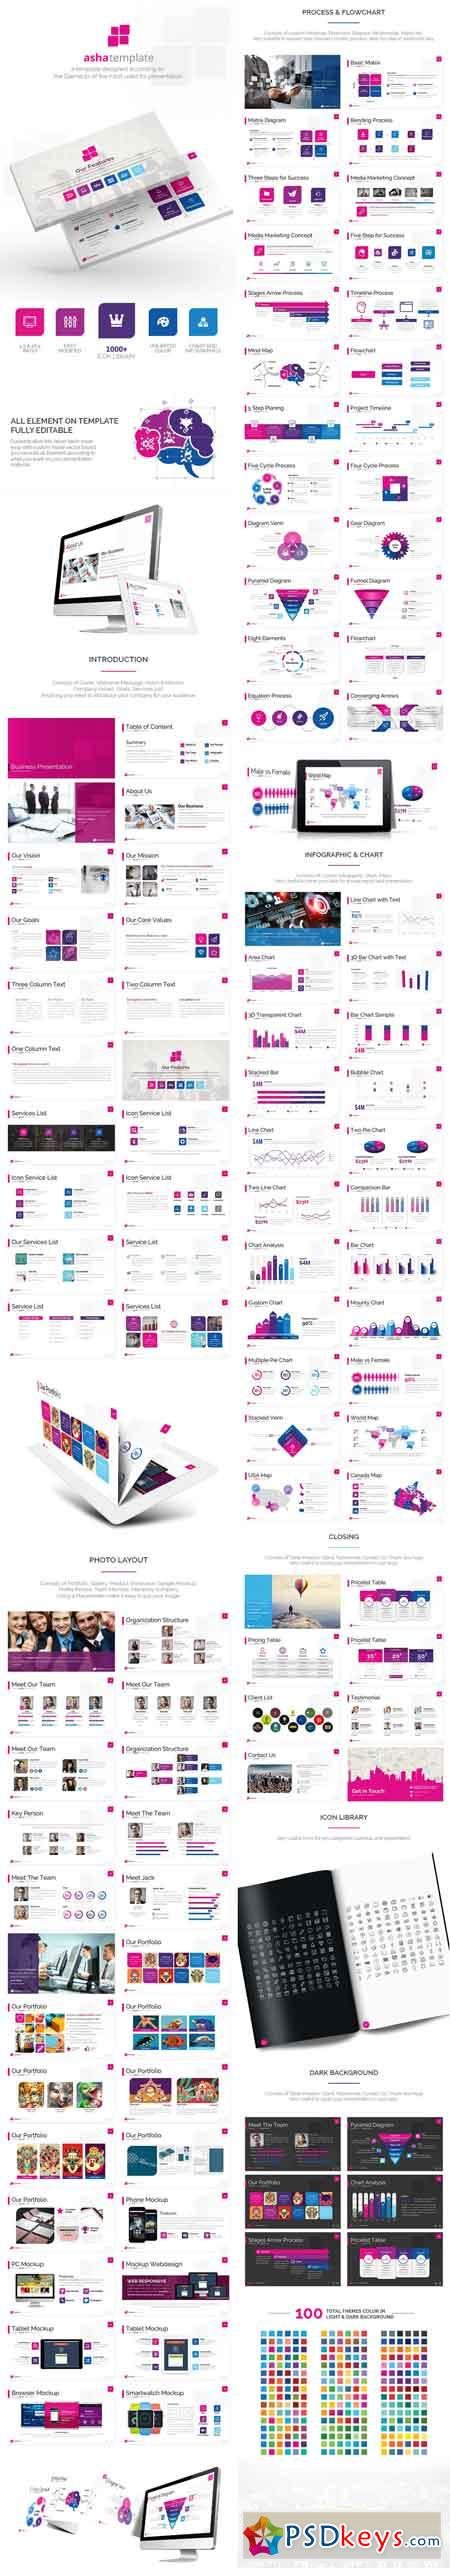 Asha - Business Powerpoint Template 13397598